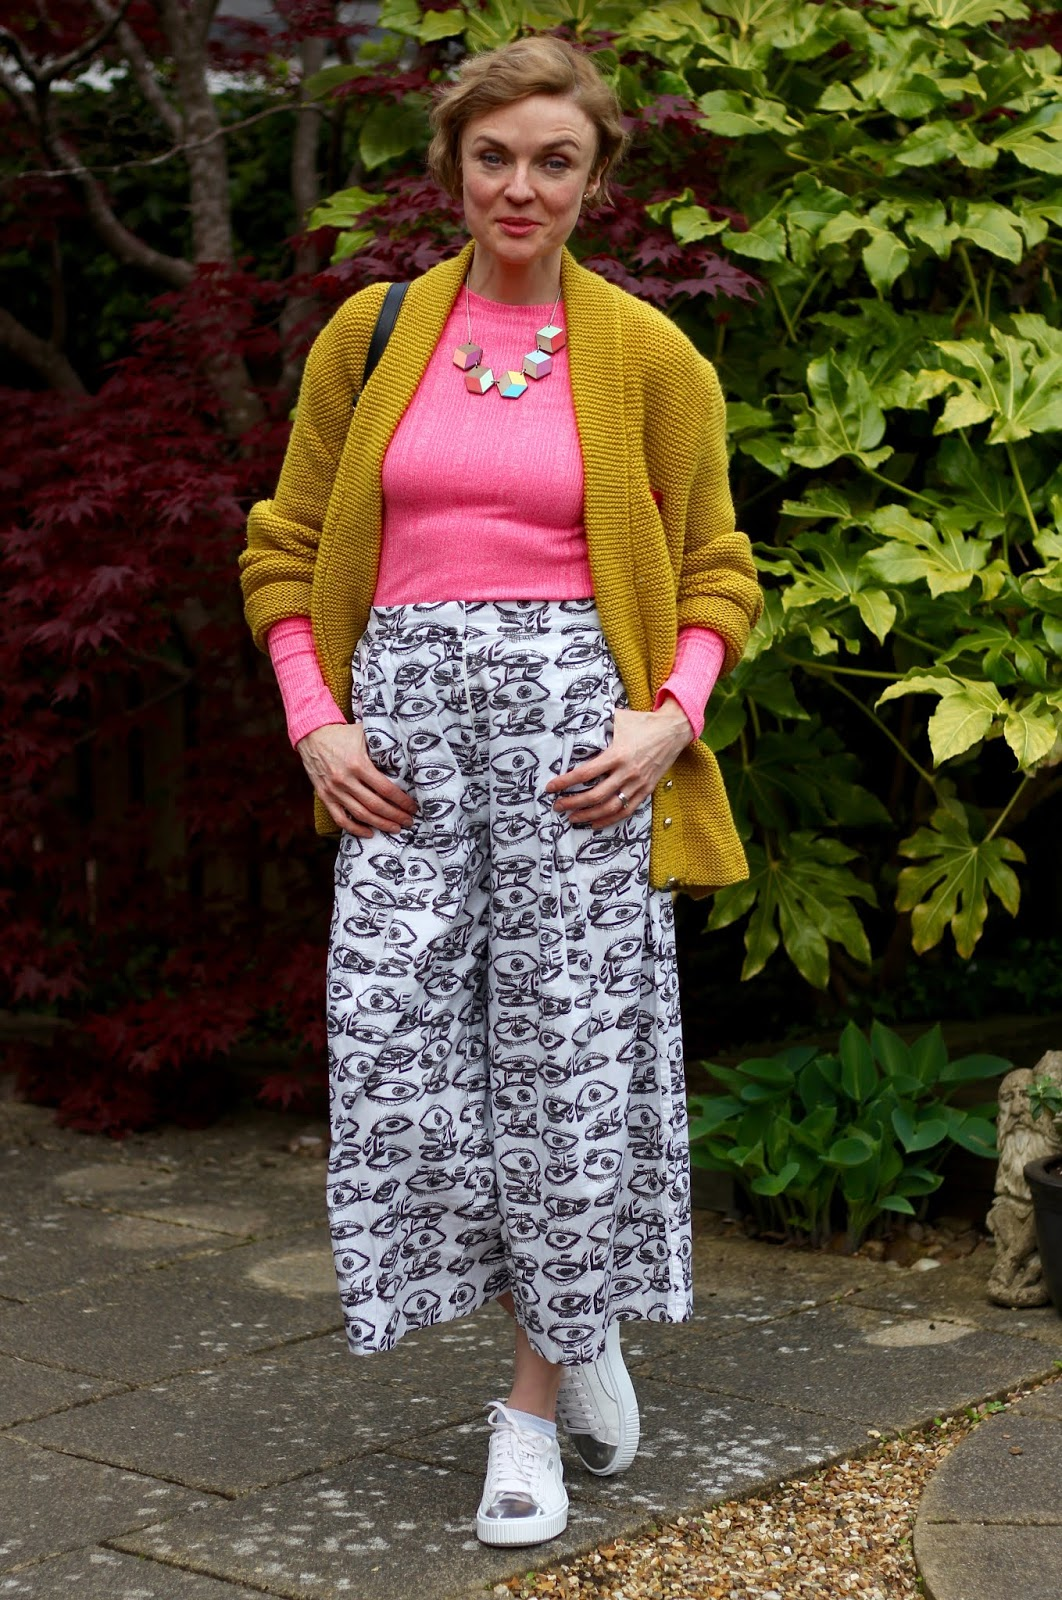 Culottes, white trainers, neon and a statement knit | Fake Fabulous